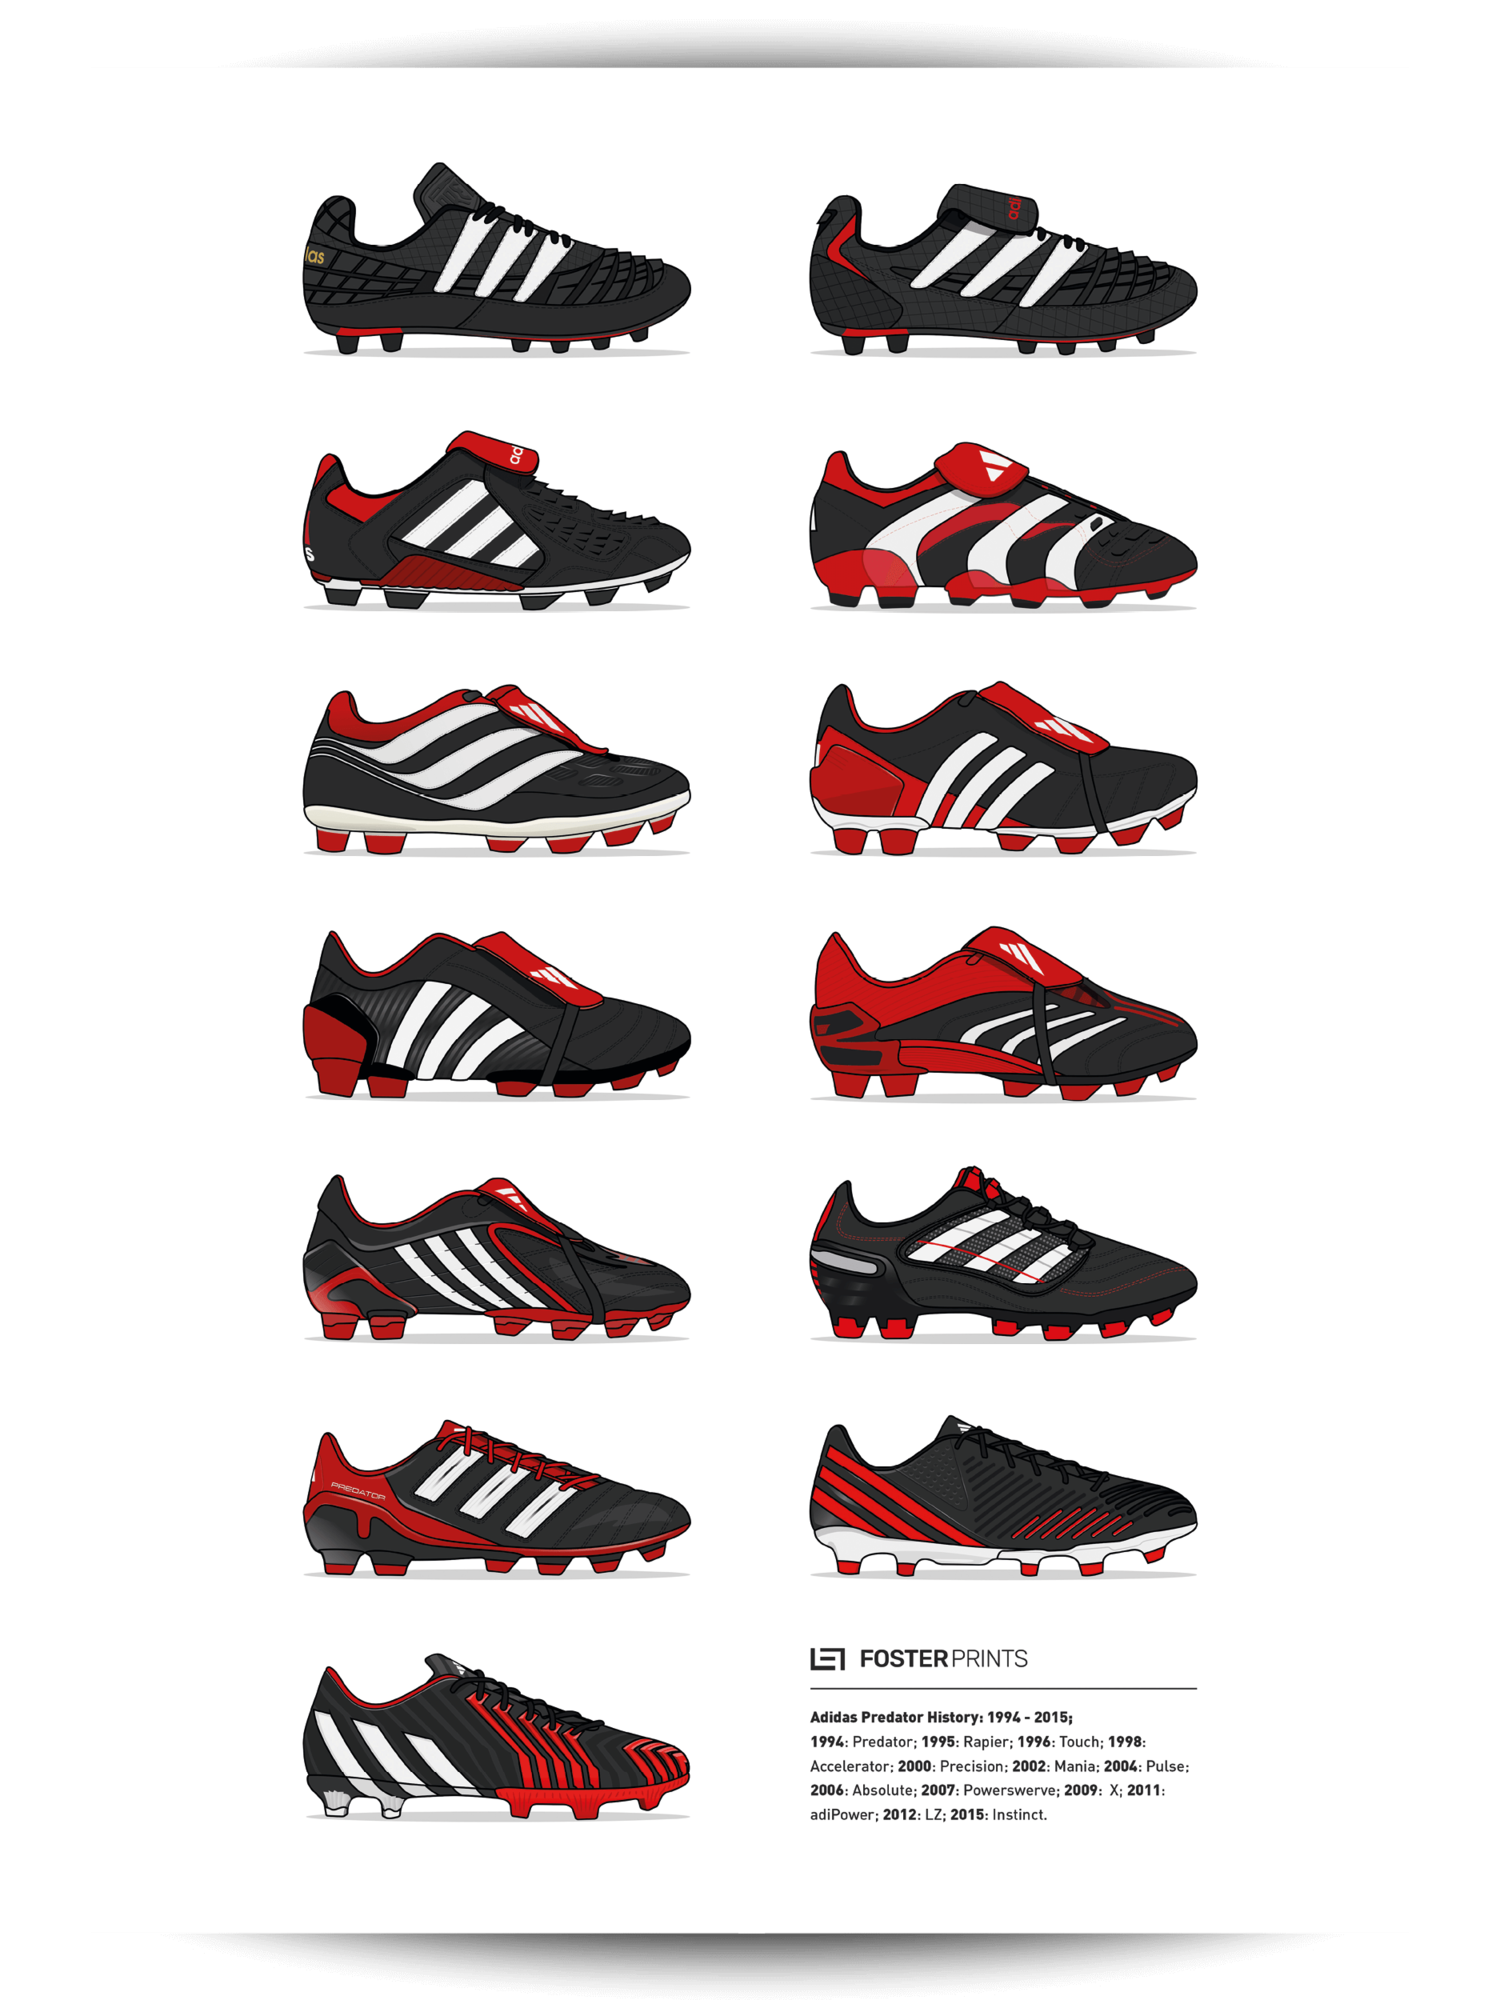 huge selection of 39f67 b4368 Predator Football Boots, Predator Boots, Adidas Predator, Soccer Stuff,  Soccer Cleats,